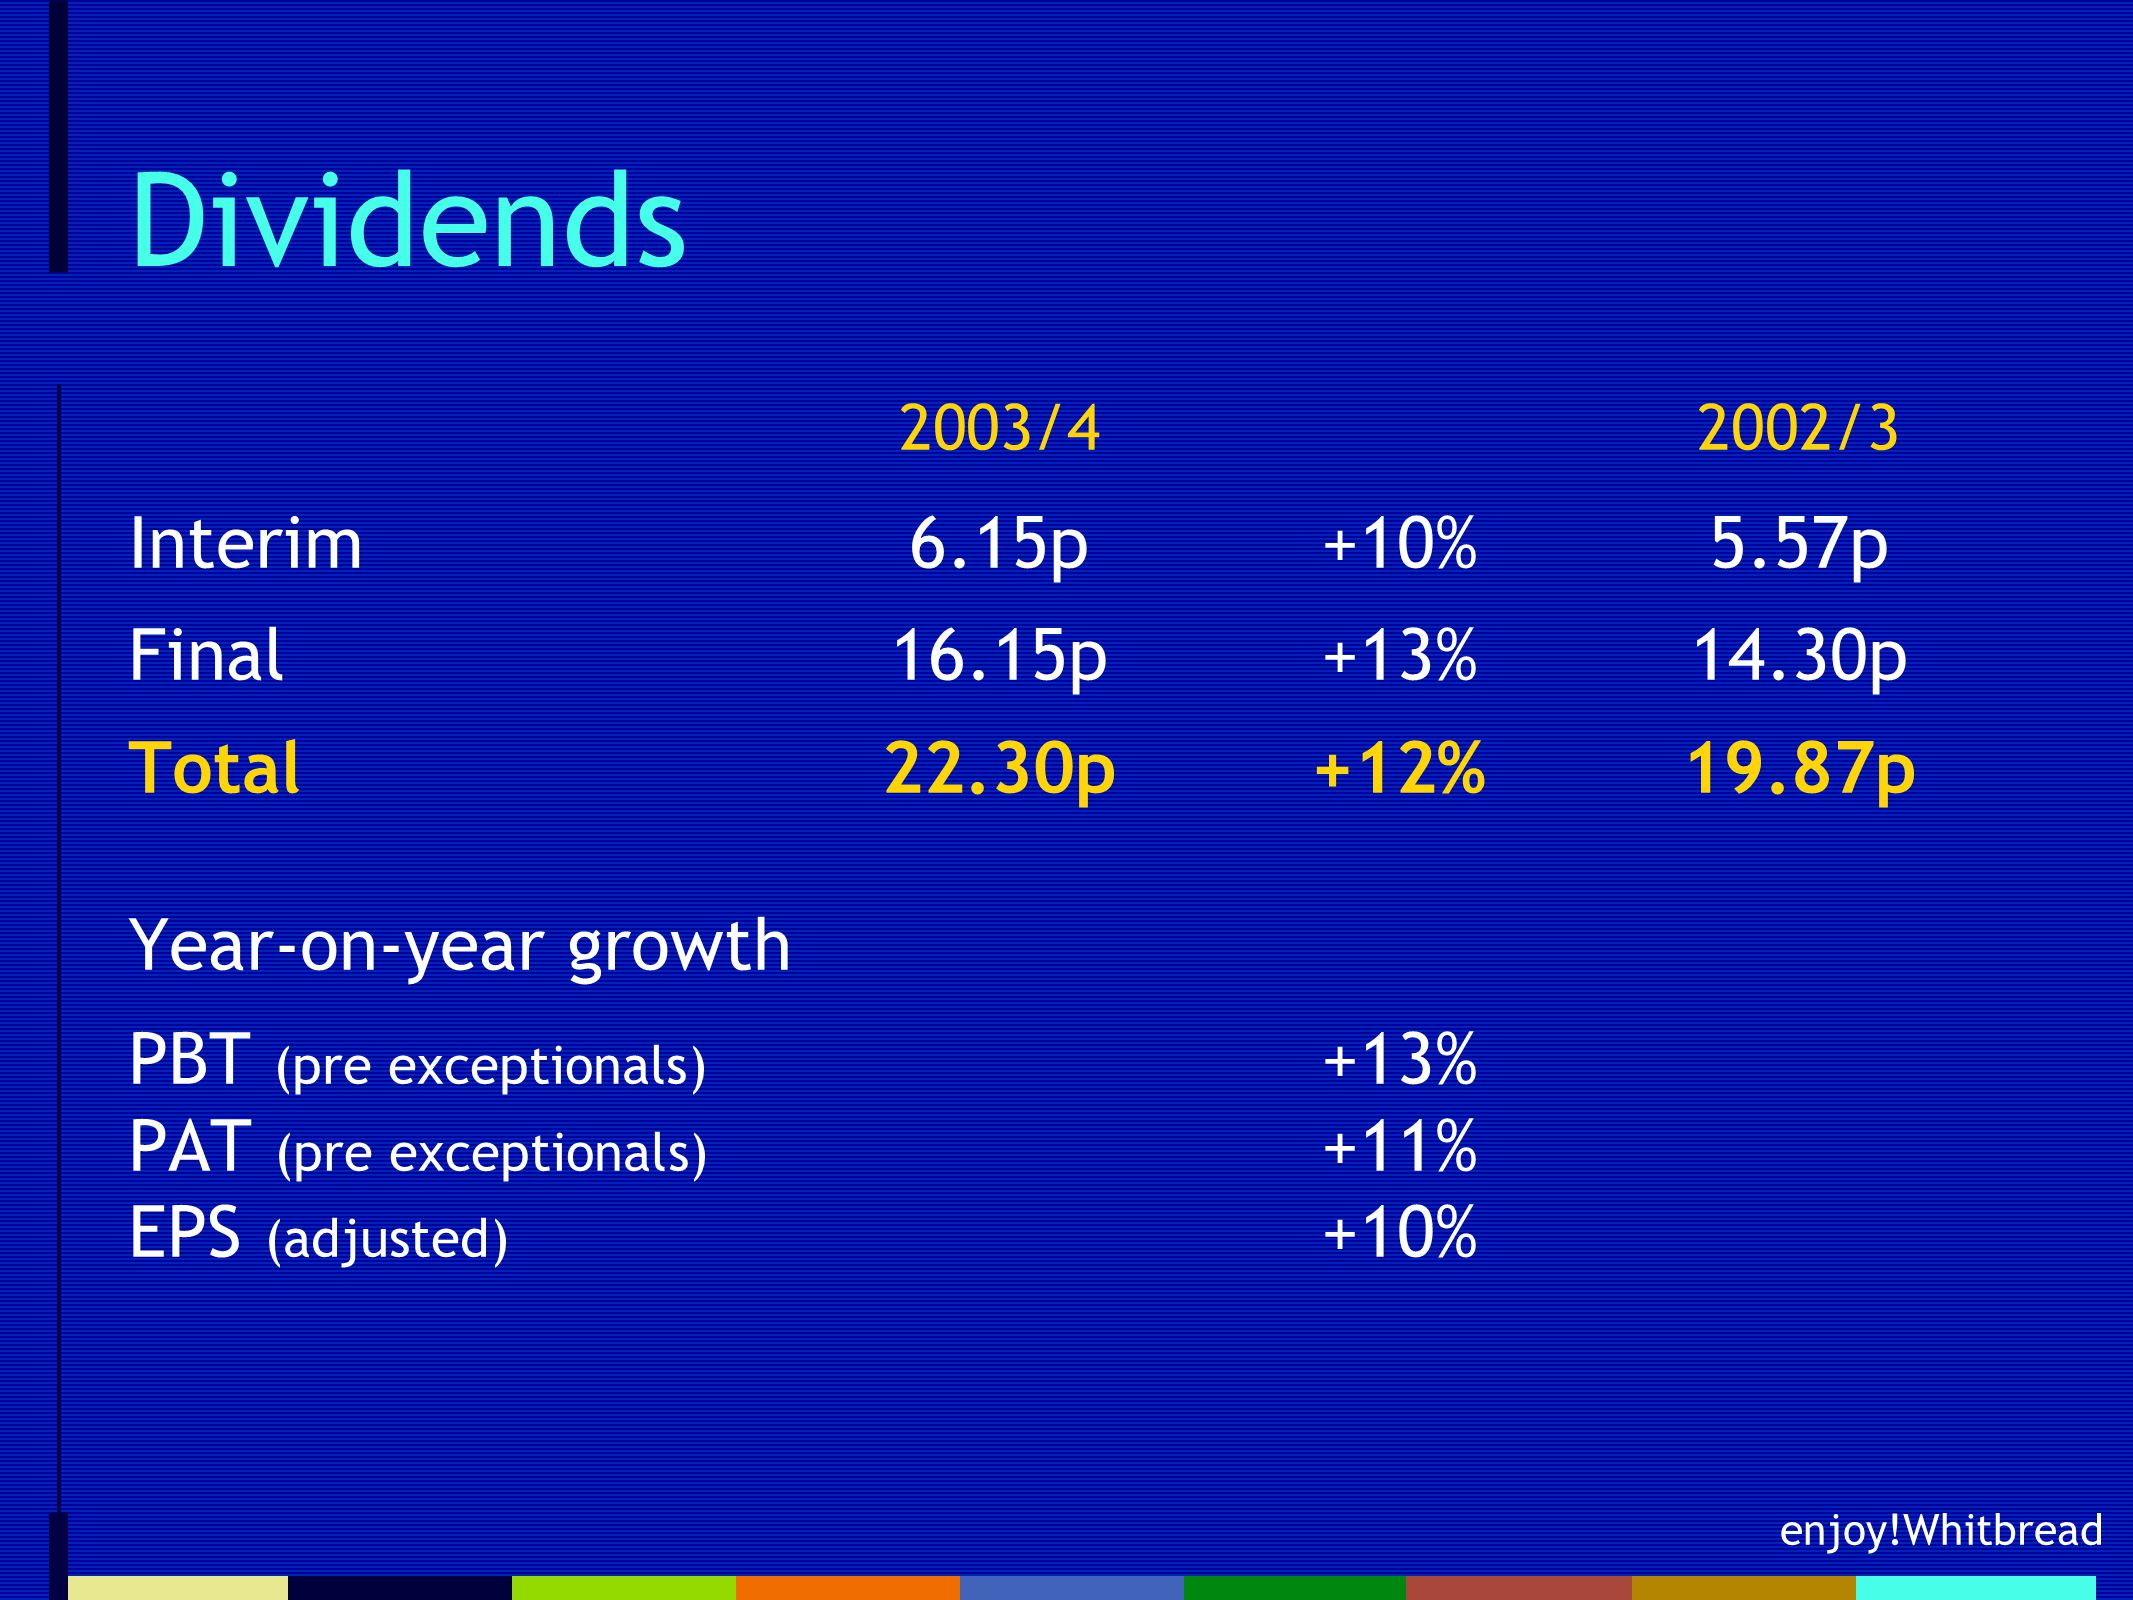 enjoy!Whitbread Dividends 2003/4  2002/3 Interim6.15p+10%5.57p Final16.15p+13%14.30p Total22.30p+12%19.87p Year-on-year growth PBT (pre exceptionals) +13% PAT (pre exceptionals) +11% EPS (adjusted) +10%